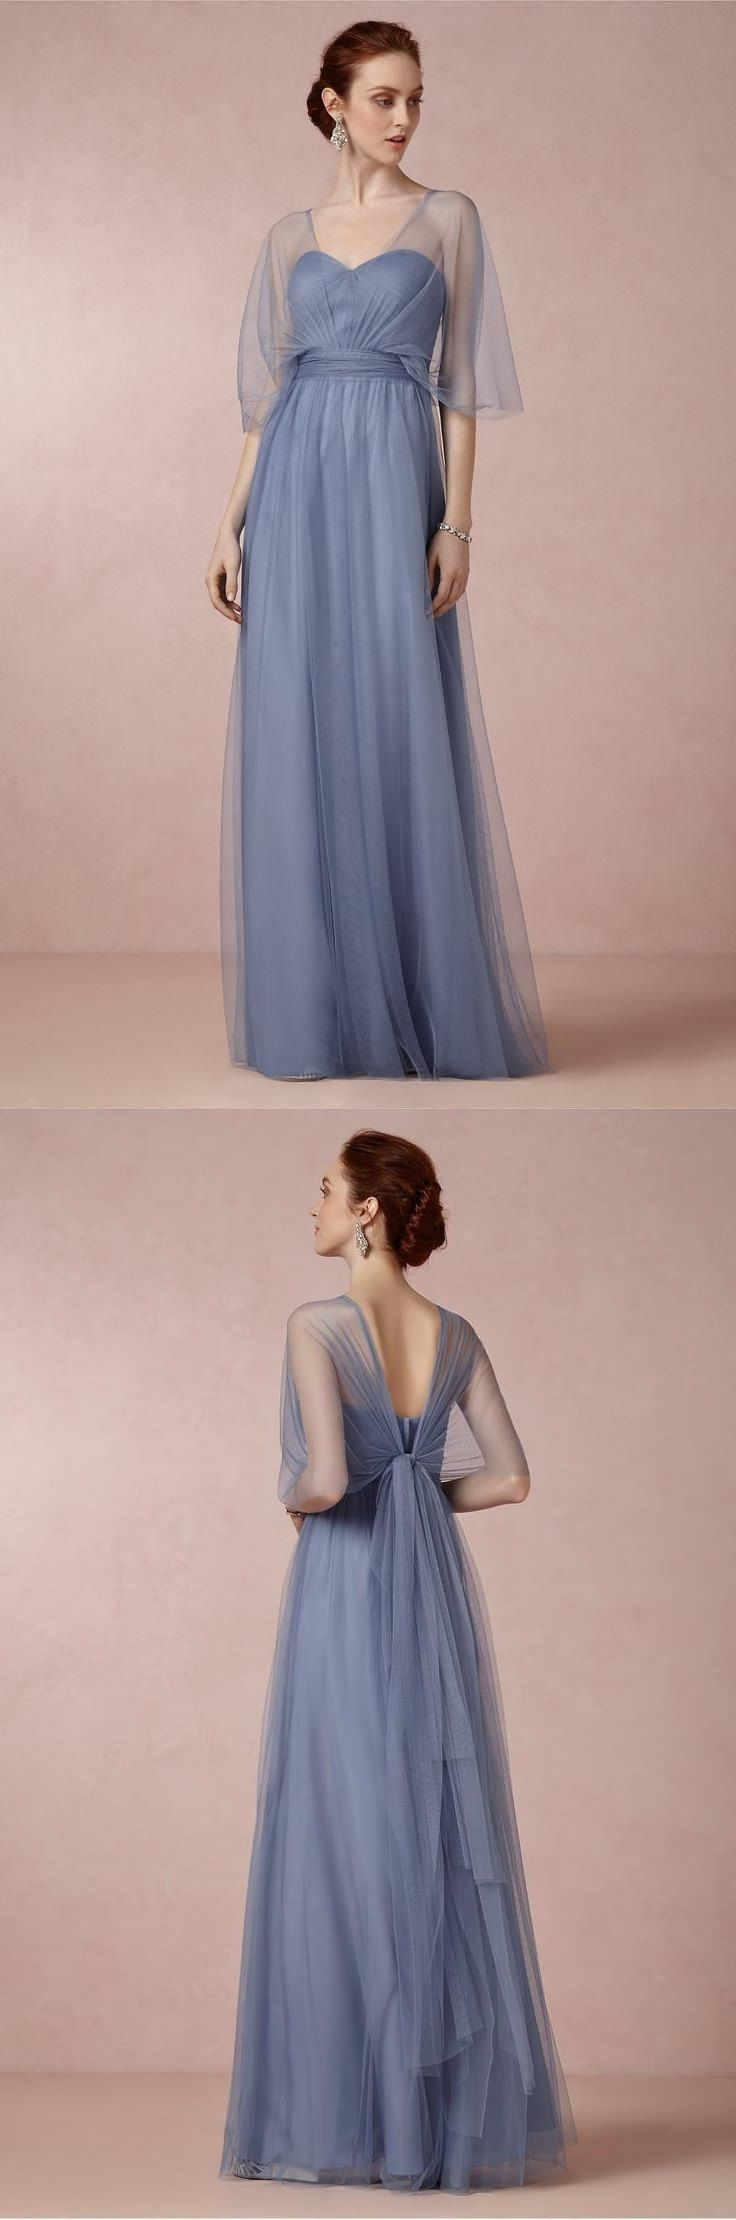 Charming Hot Sale Shoulder Straps Ruched Floor-length Long Bridesmaid Dress